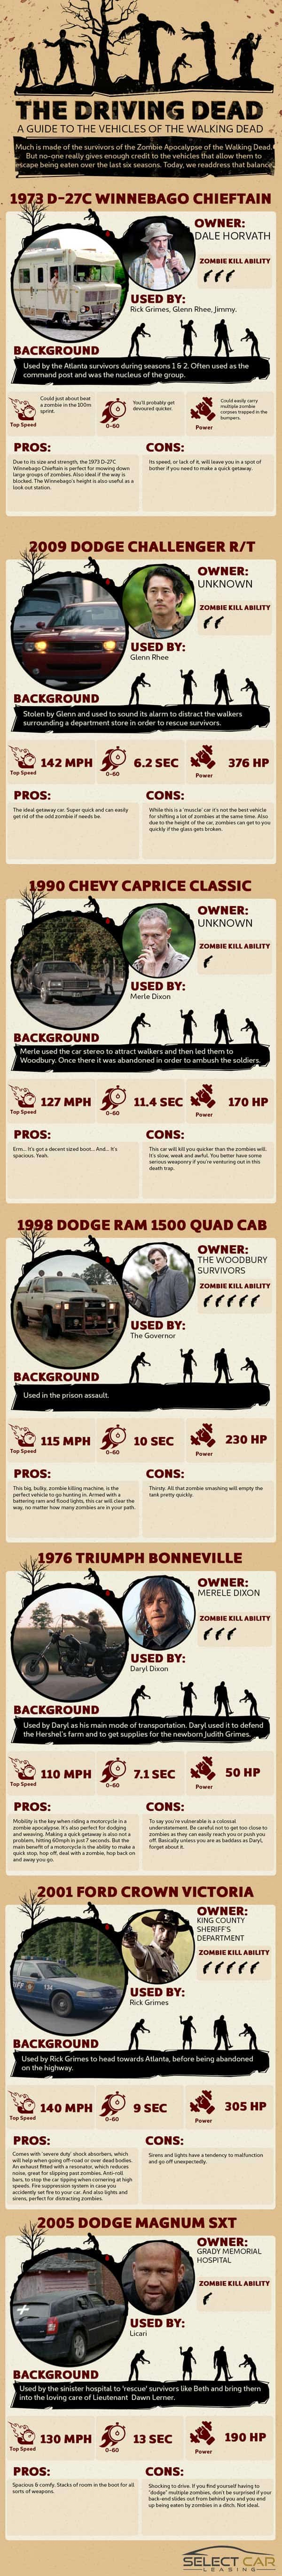 The Driving Dead A Guide to the Vehicles of the Walking Dead